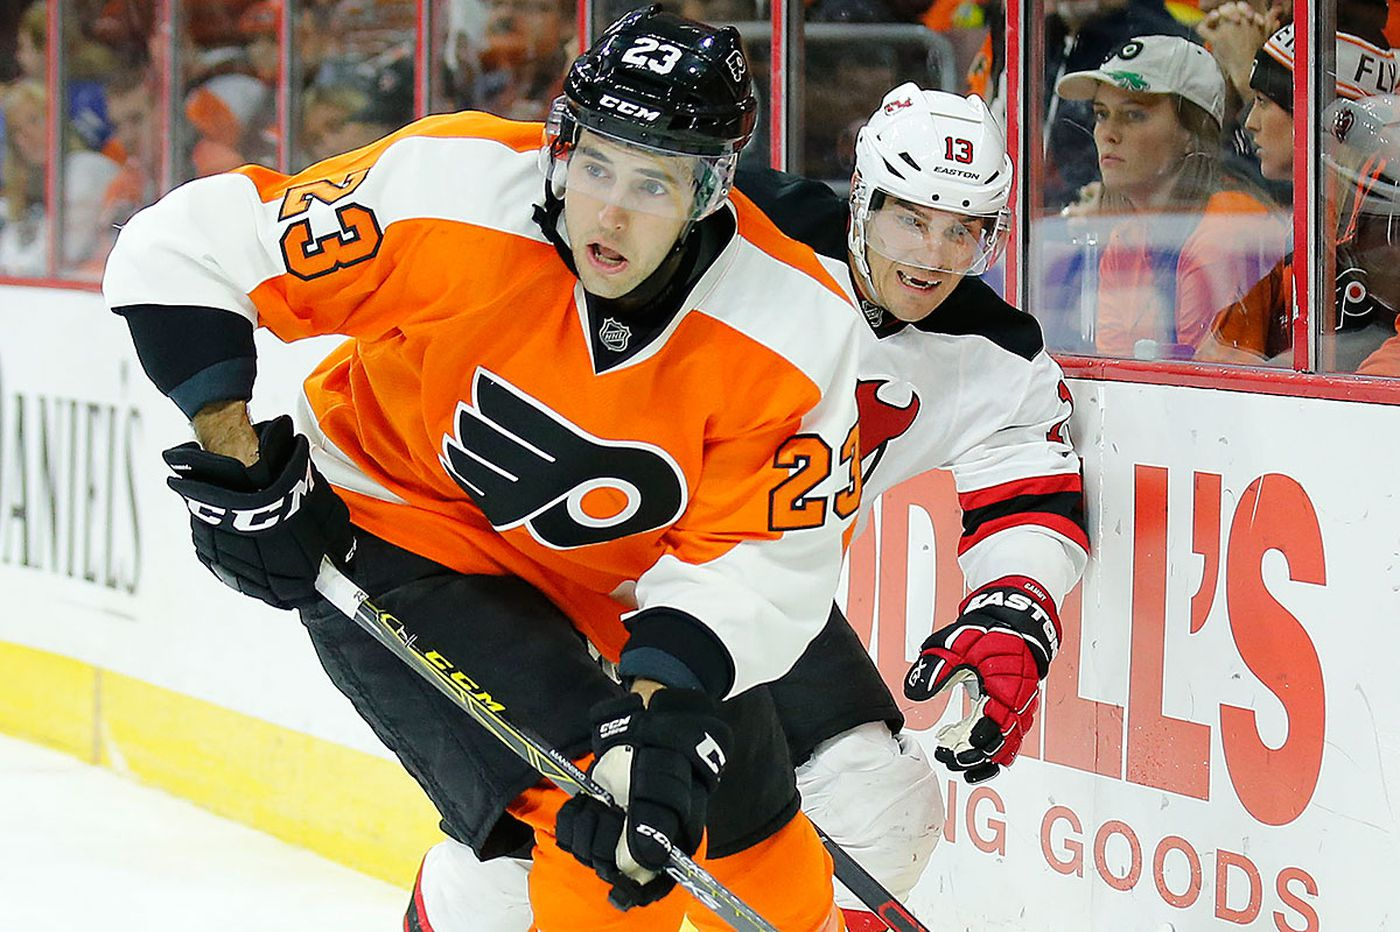 Brandon Manning replaces injured Nick Schultz for Flyers